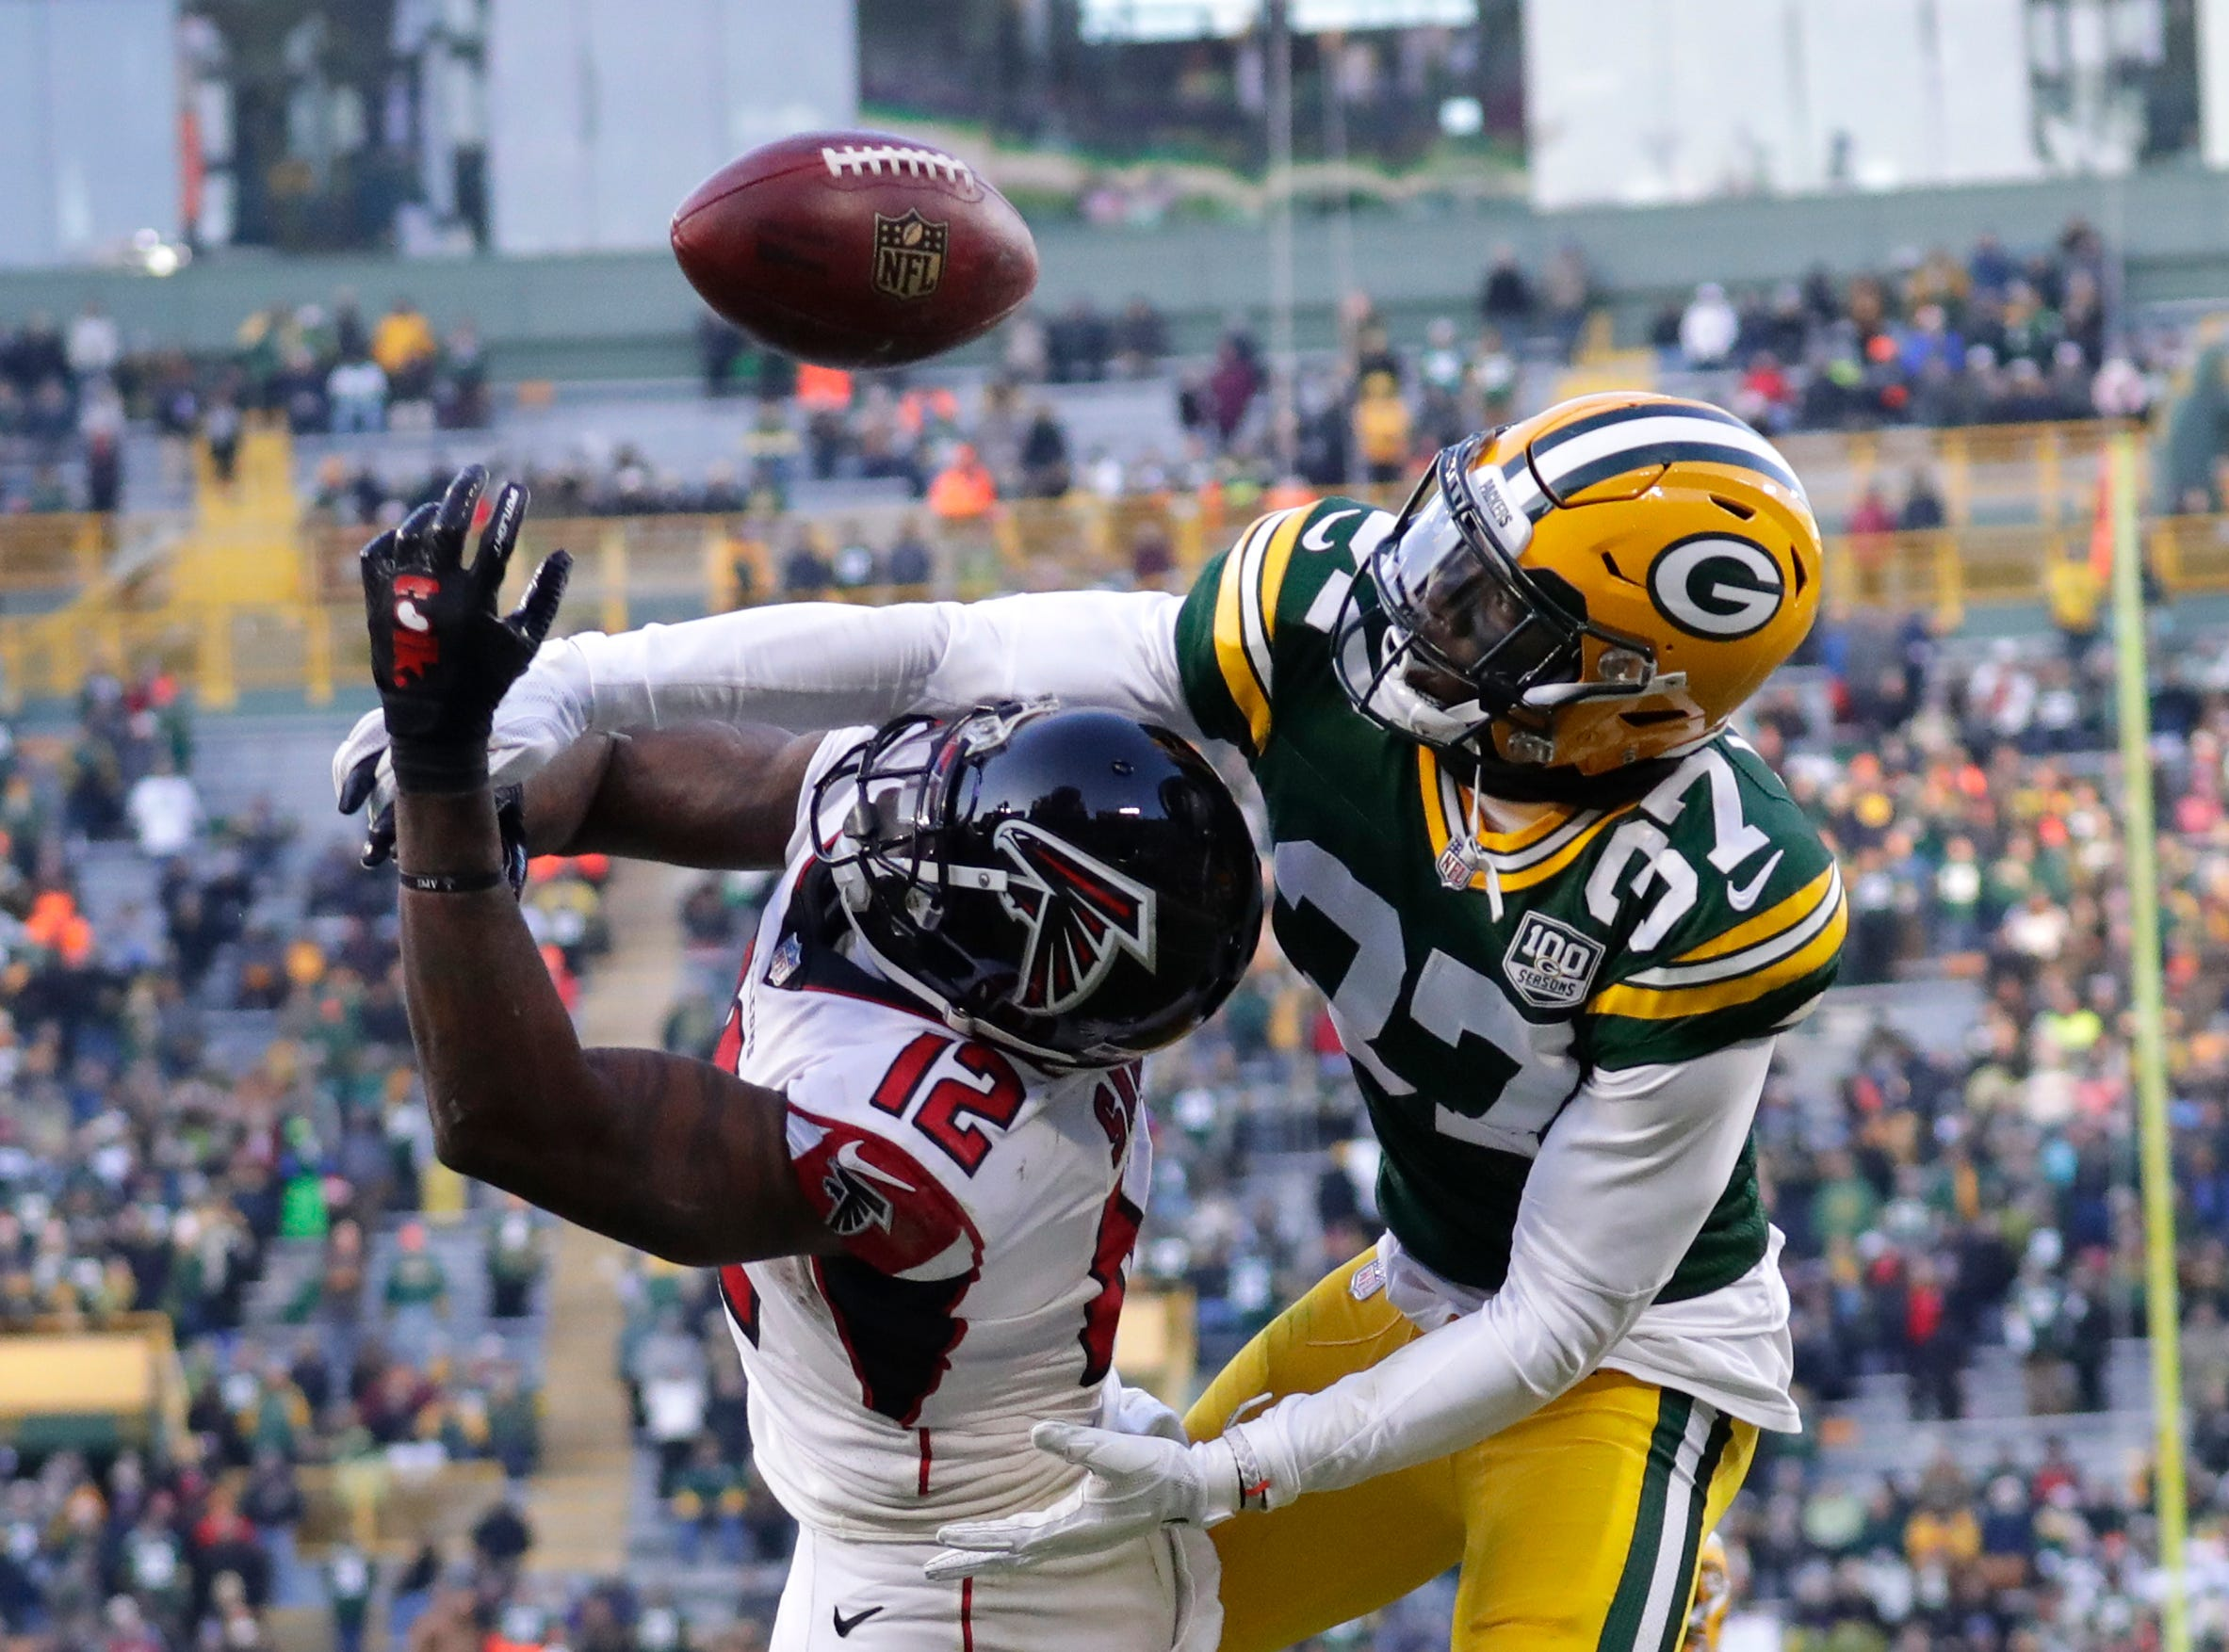 Green Bay Packers cornerback Josh Jackson (37) breaks up a pass in the end zone intended for Atlanta Falcons wide receiver Mohamed Sanu (12) late in the fourth quarter Sunday, December 9, 2018, at Lambeau Field in Green Bay, Wis. 